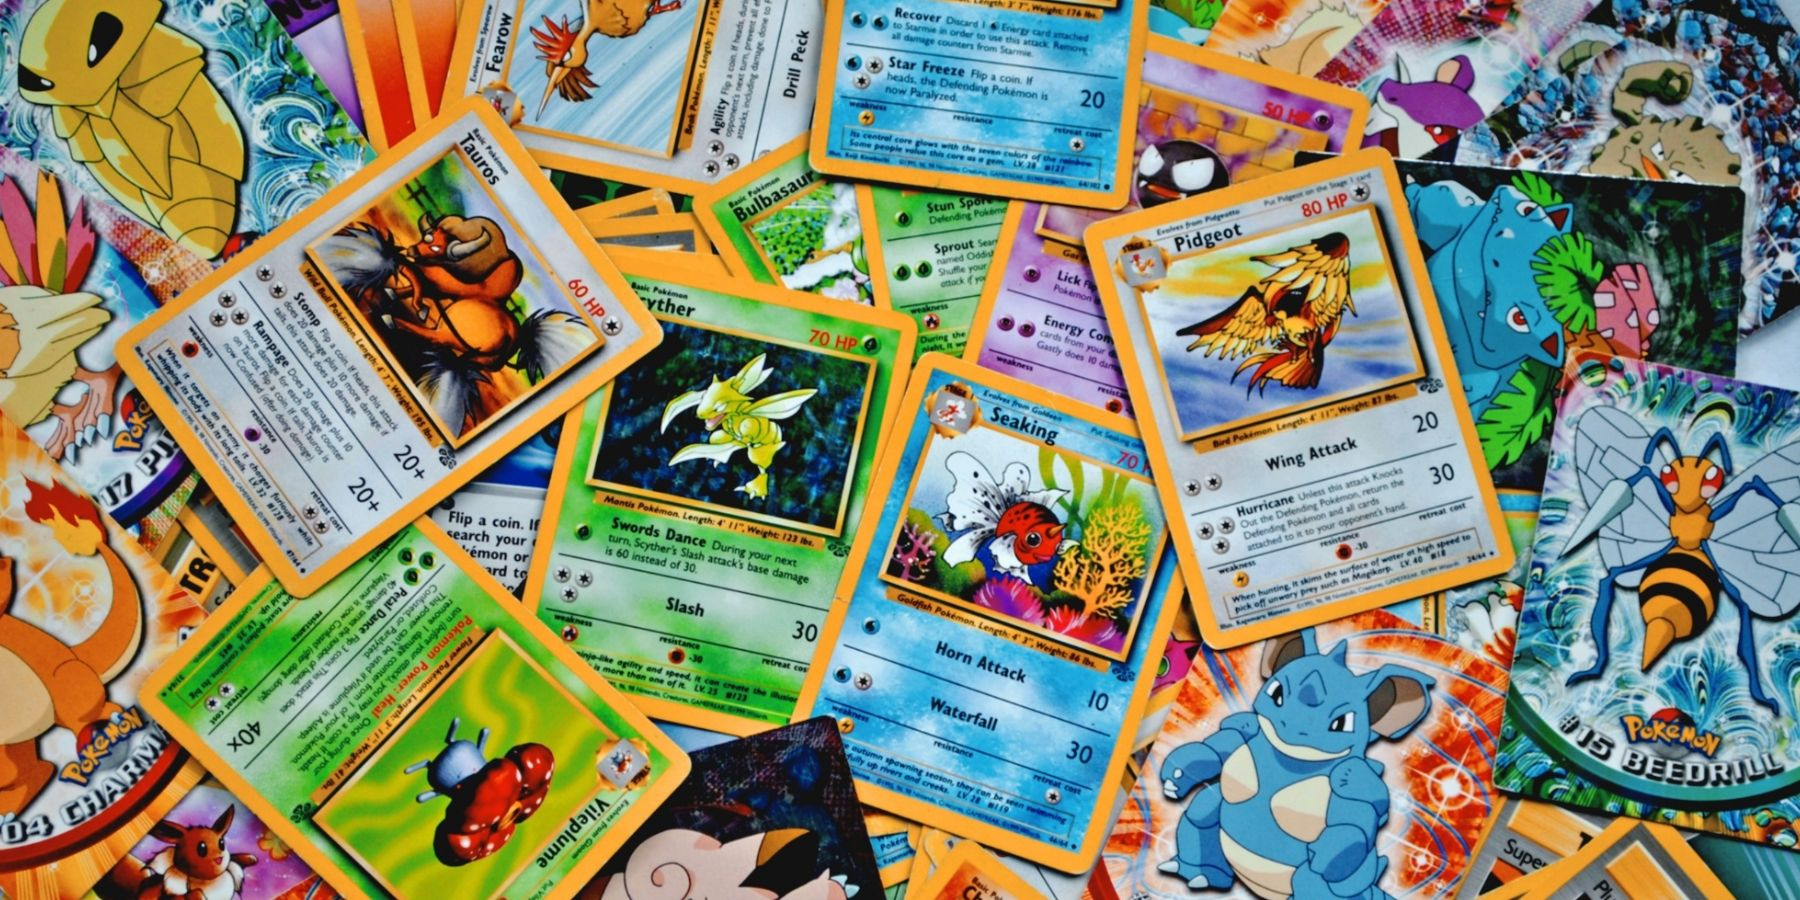 Rare Pokémon Card Set Expected to Fetch Over $65k at Auction